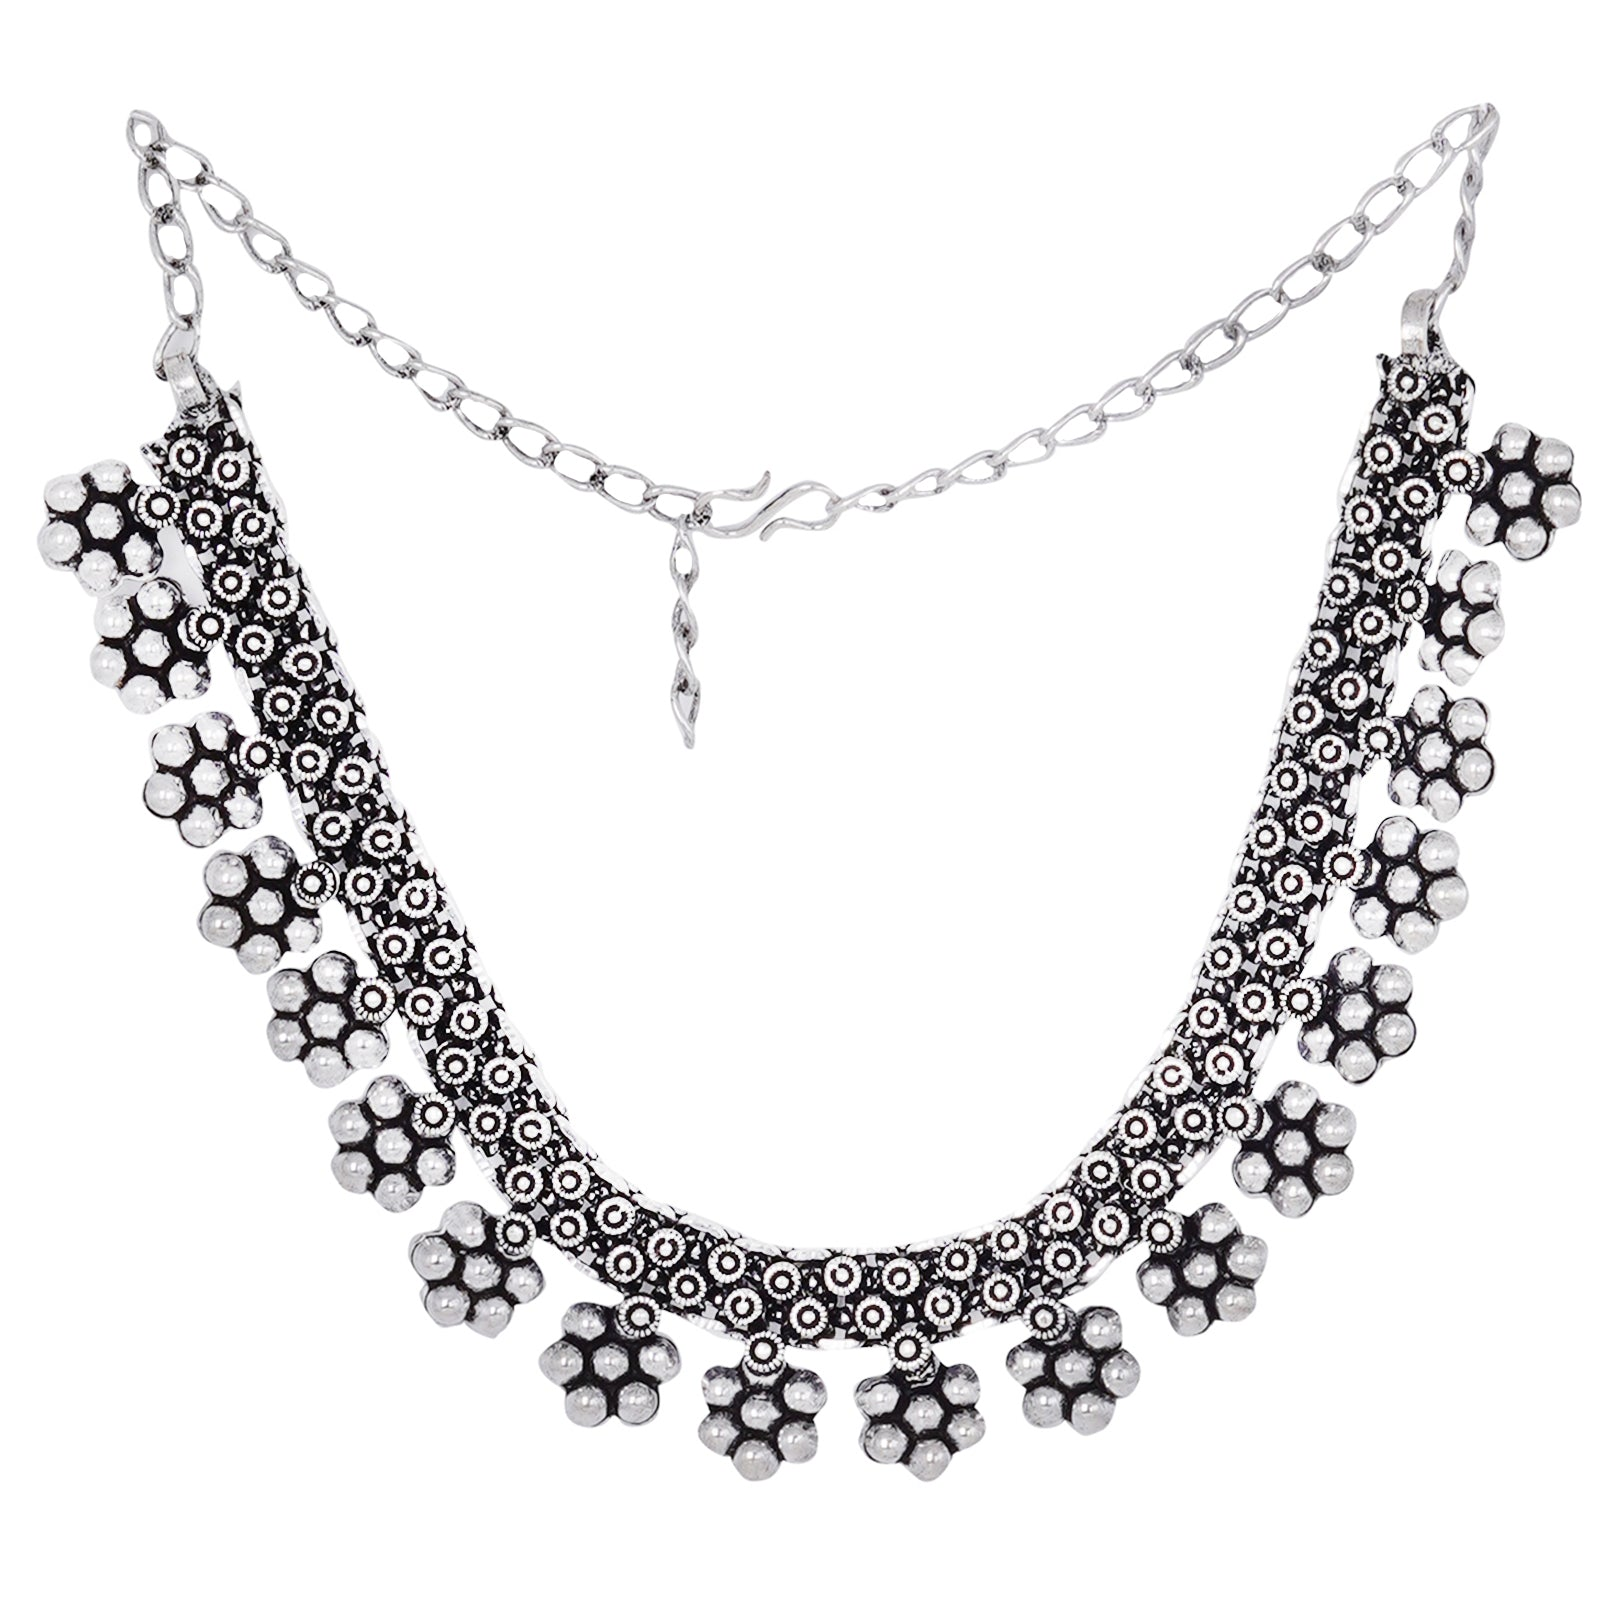 Teejh Praanvi Silver Oxidised Choker Necklace